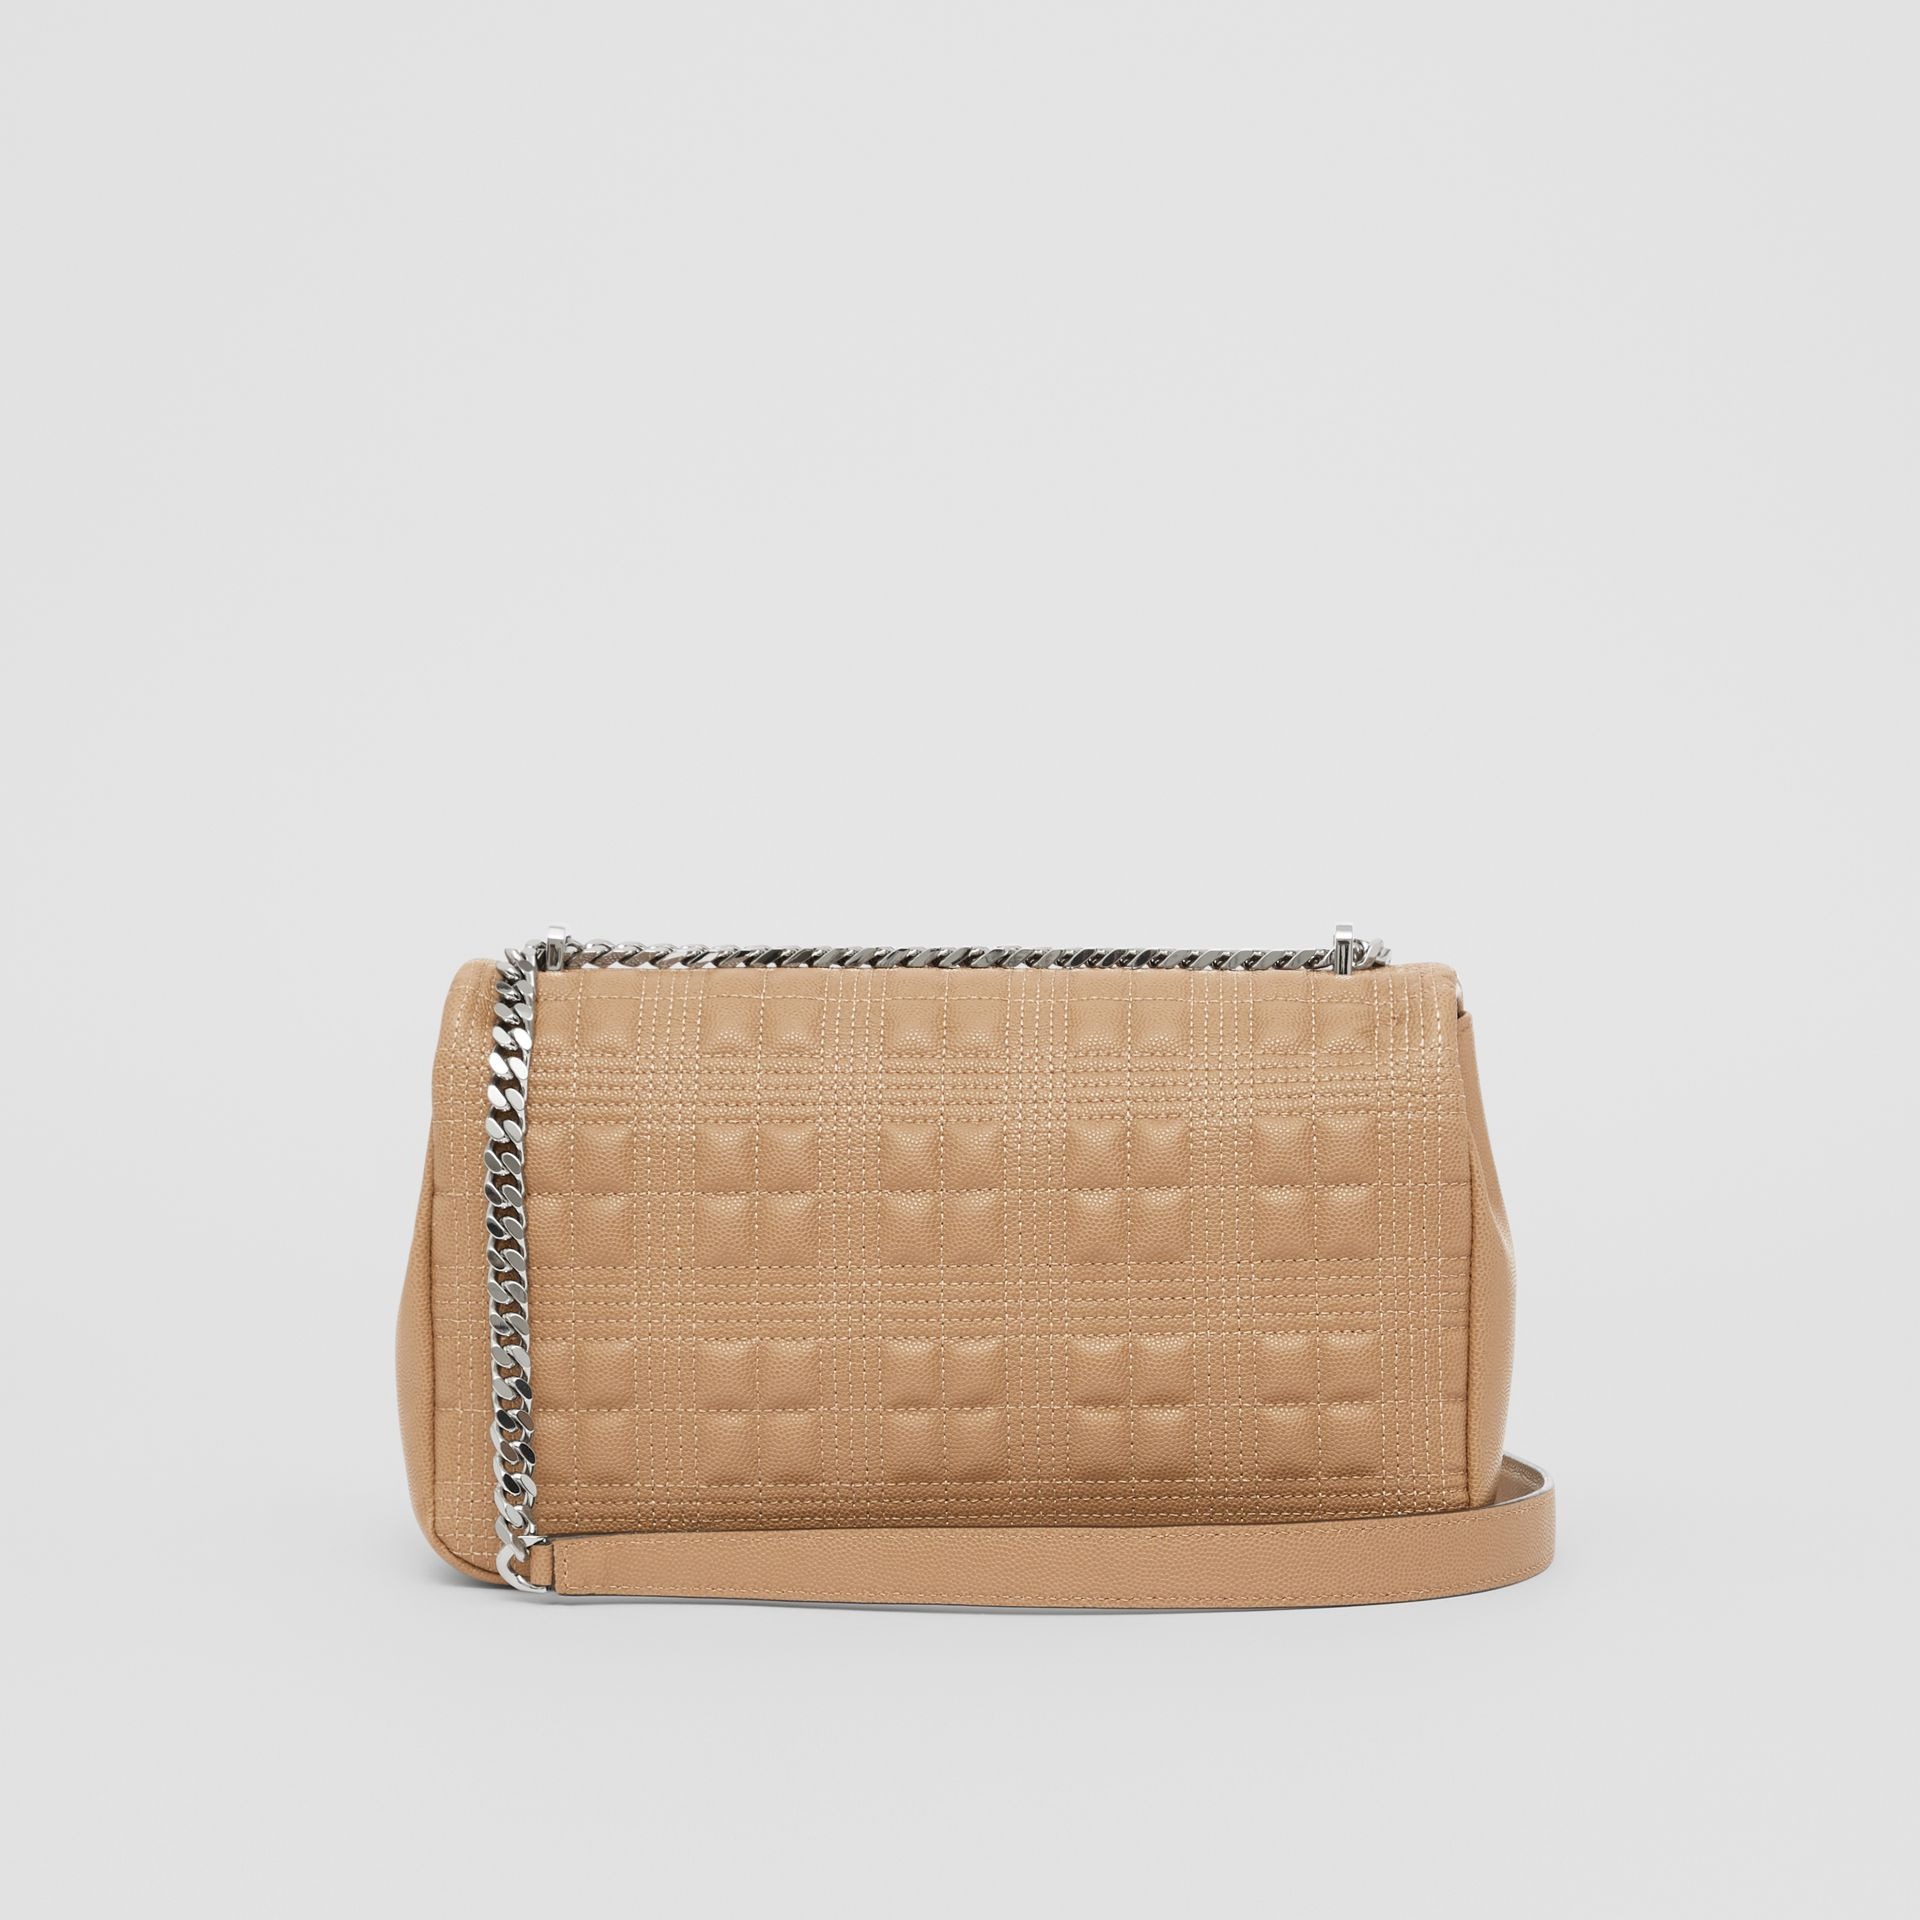 Medium Quilted Grainy Leather Lola Bag in Camel/palladium - Women | Burberry Canada - gallery image 7